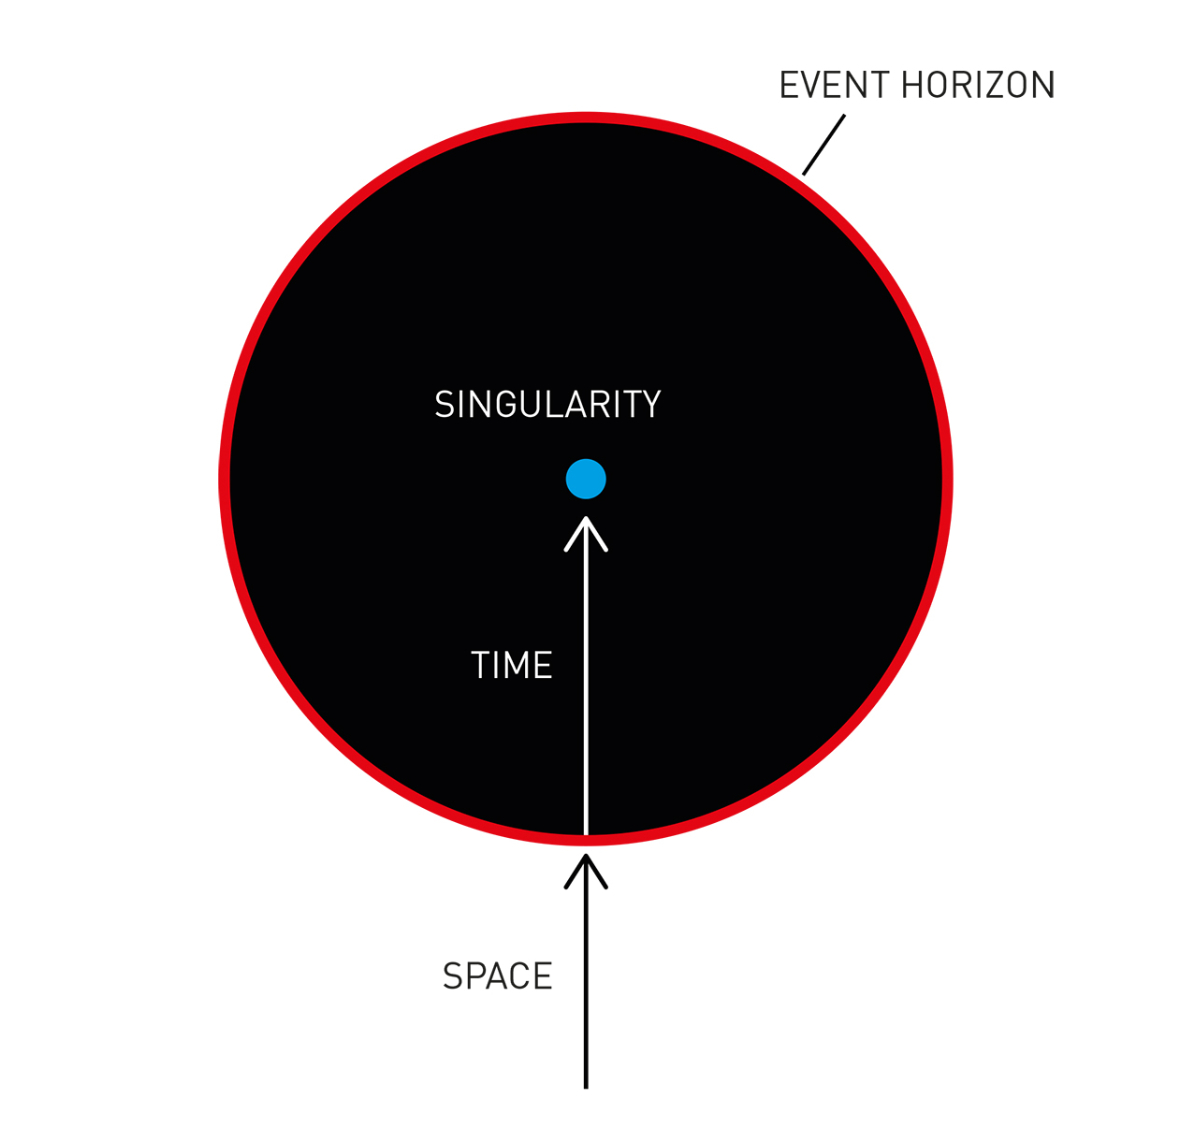 A black circle symbolizes a black hole. In the center of the black hole, a singularity is depicted as a blue disk.